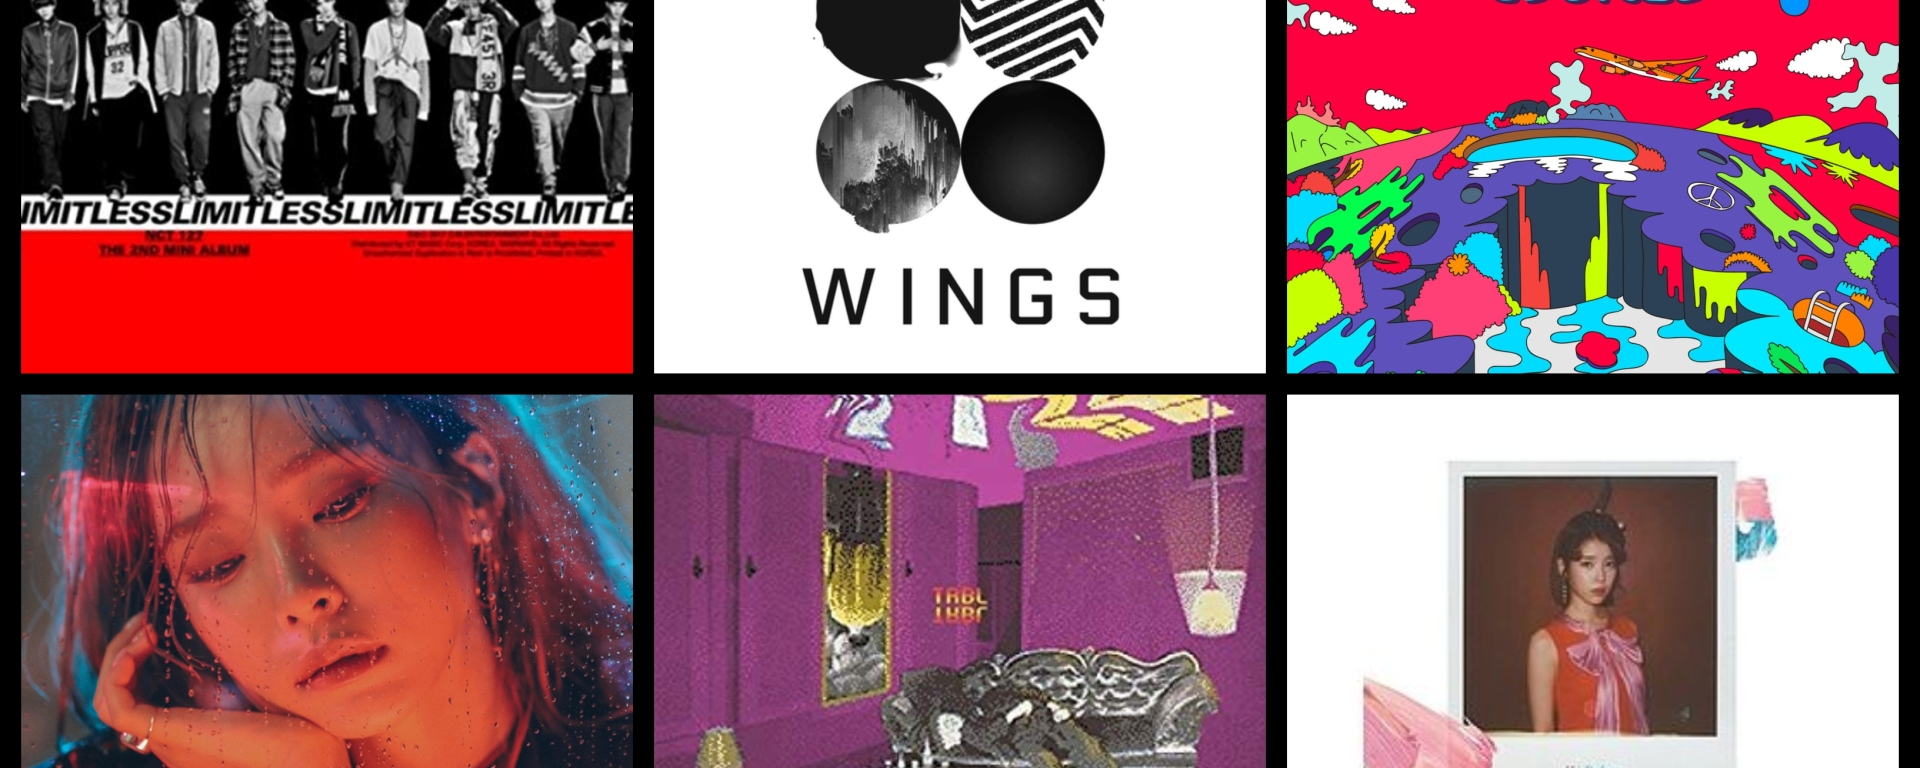 Six album covers of Korean pop albums in a grid.